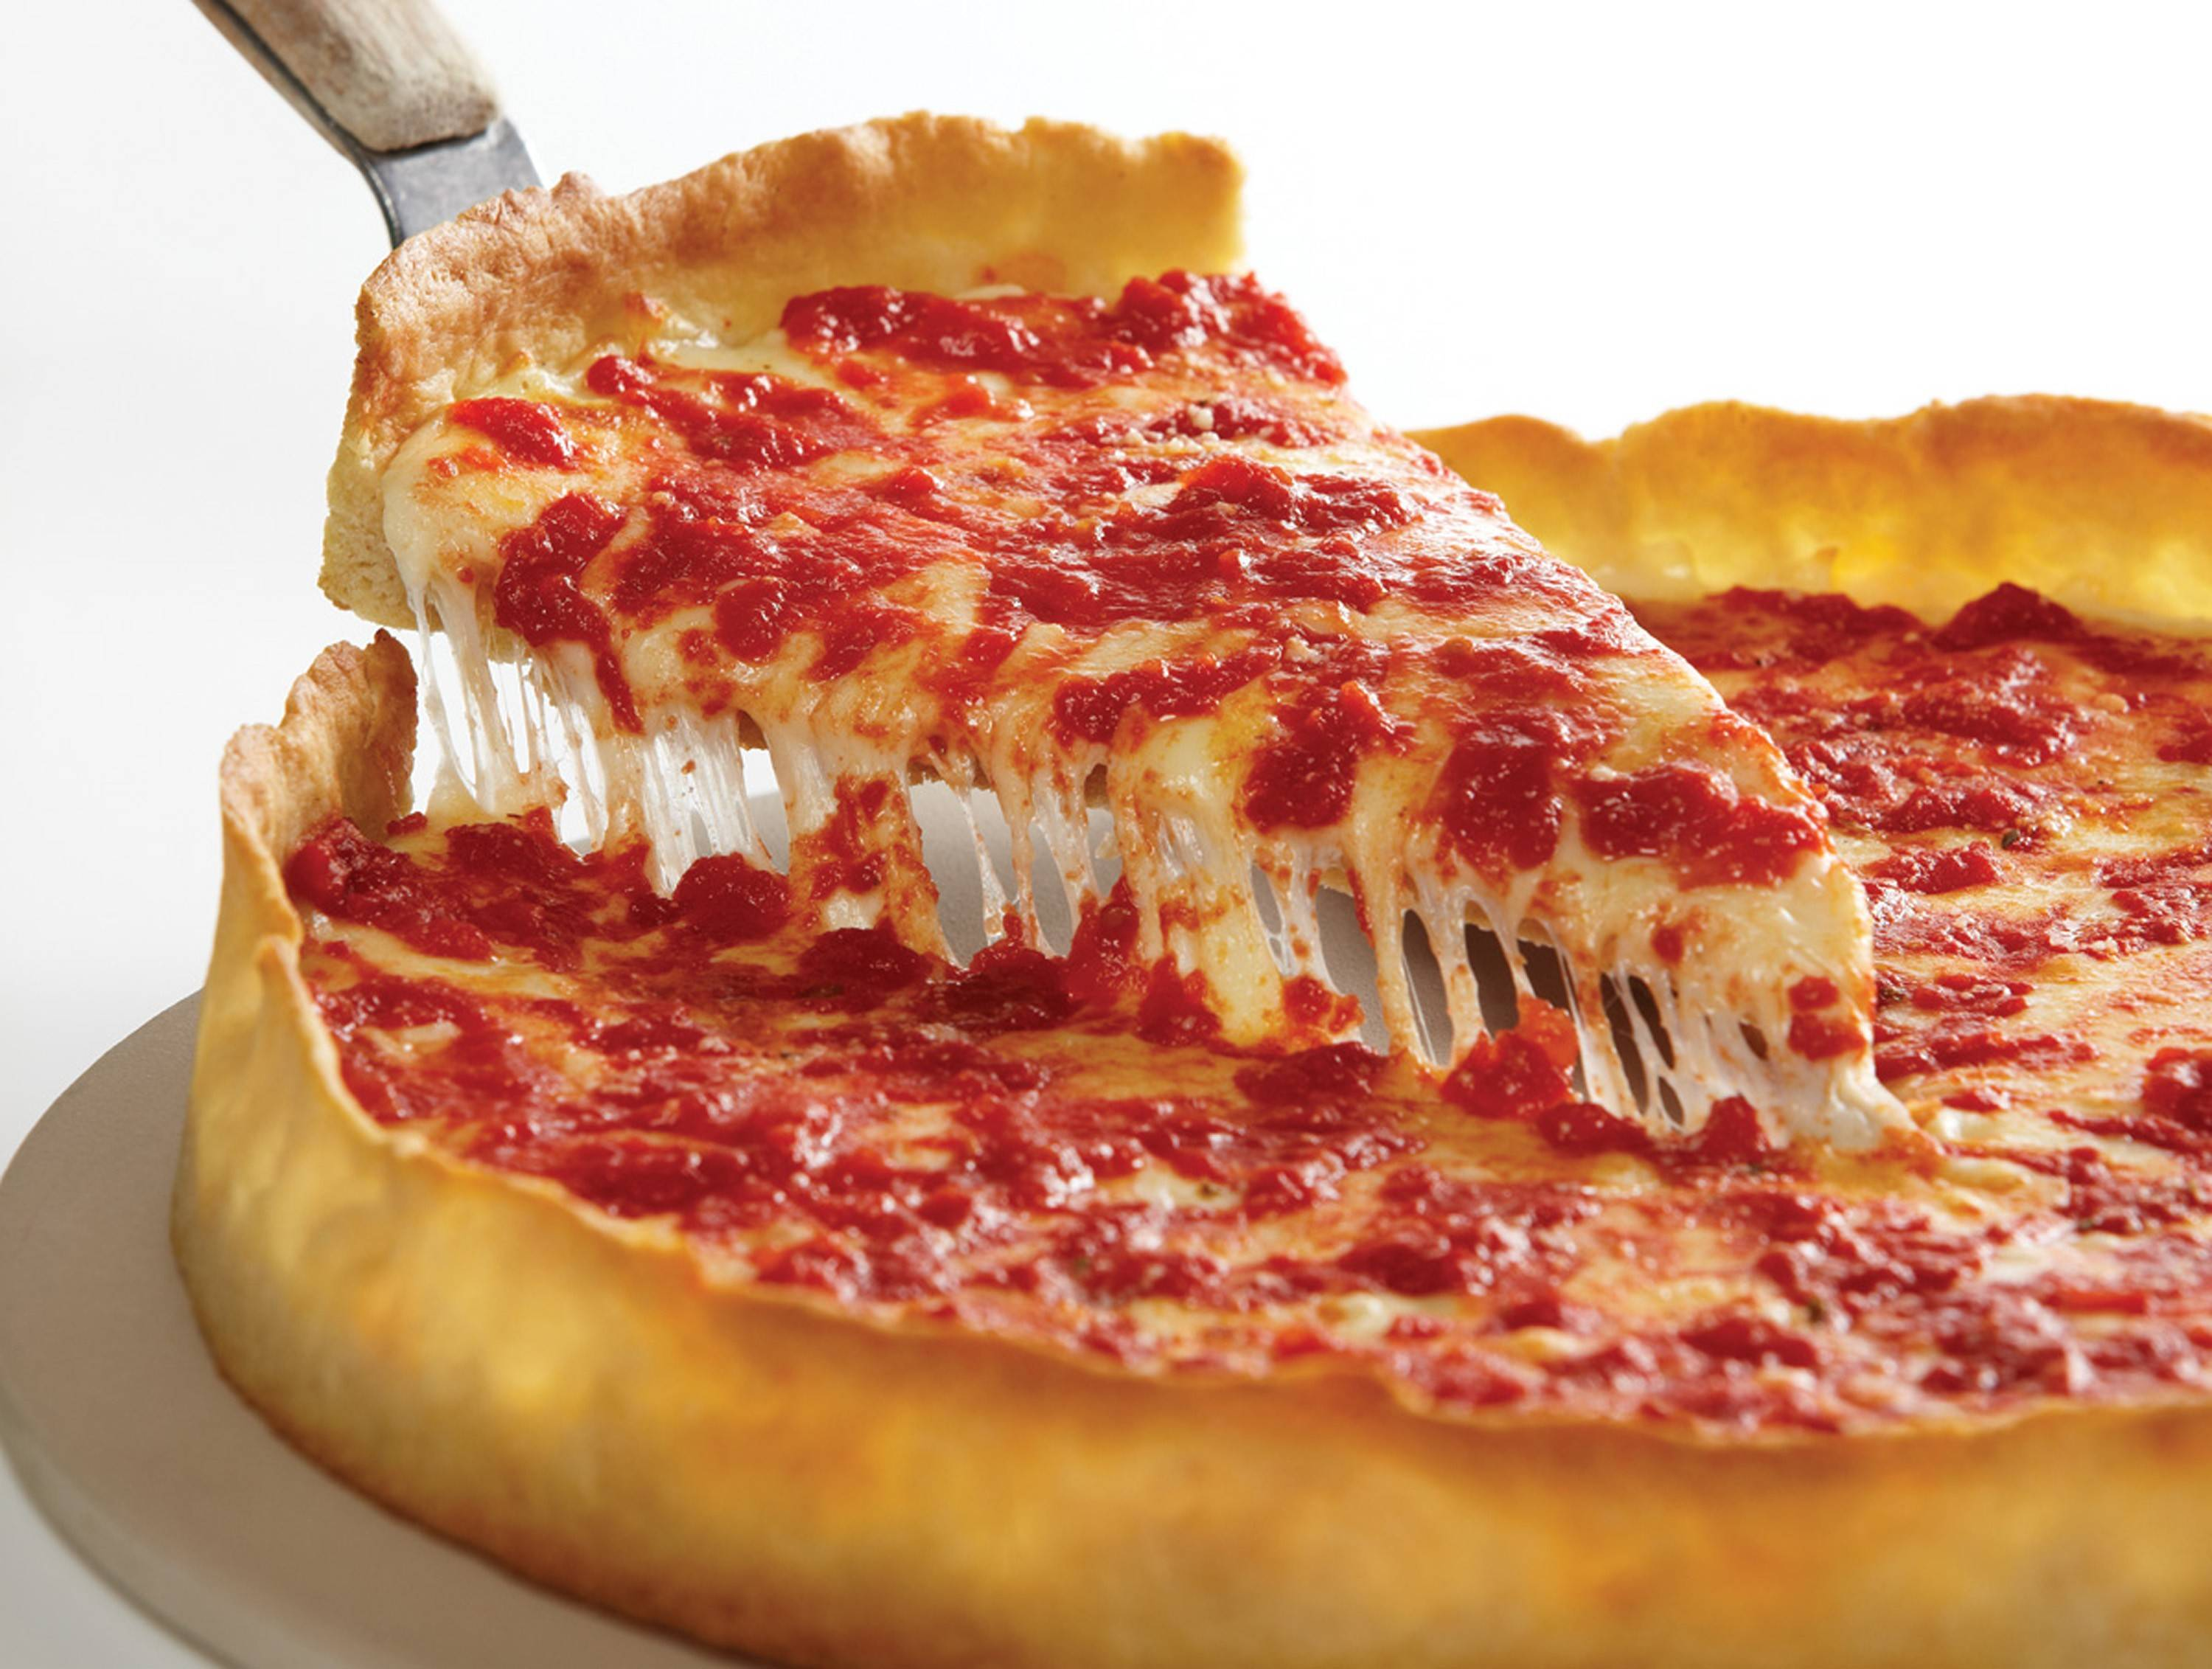 An East Coast ranking of the 101 Best Pizzas in America wants you to believe that New Haven, Conn., has five places that serve up better pizza than this delectable deep-dish offering from suburban favorite Lou Malnati's.